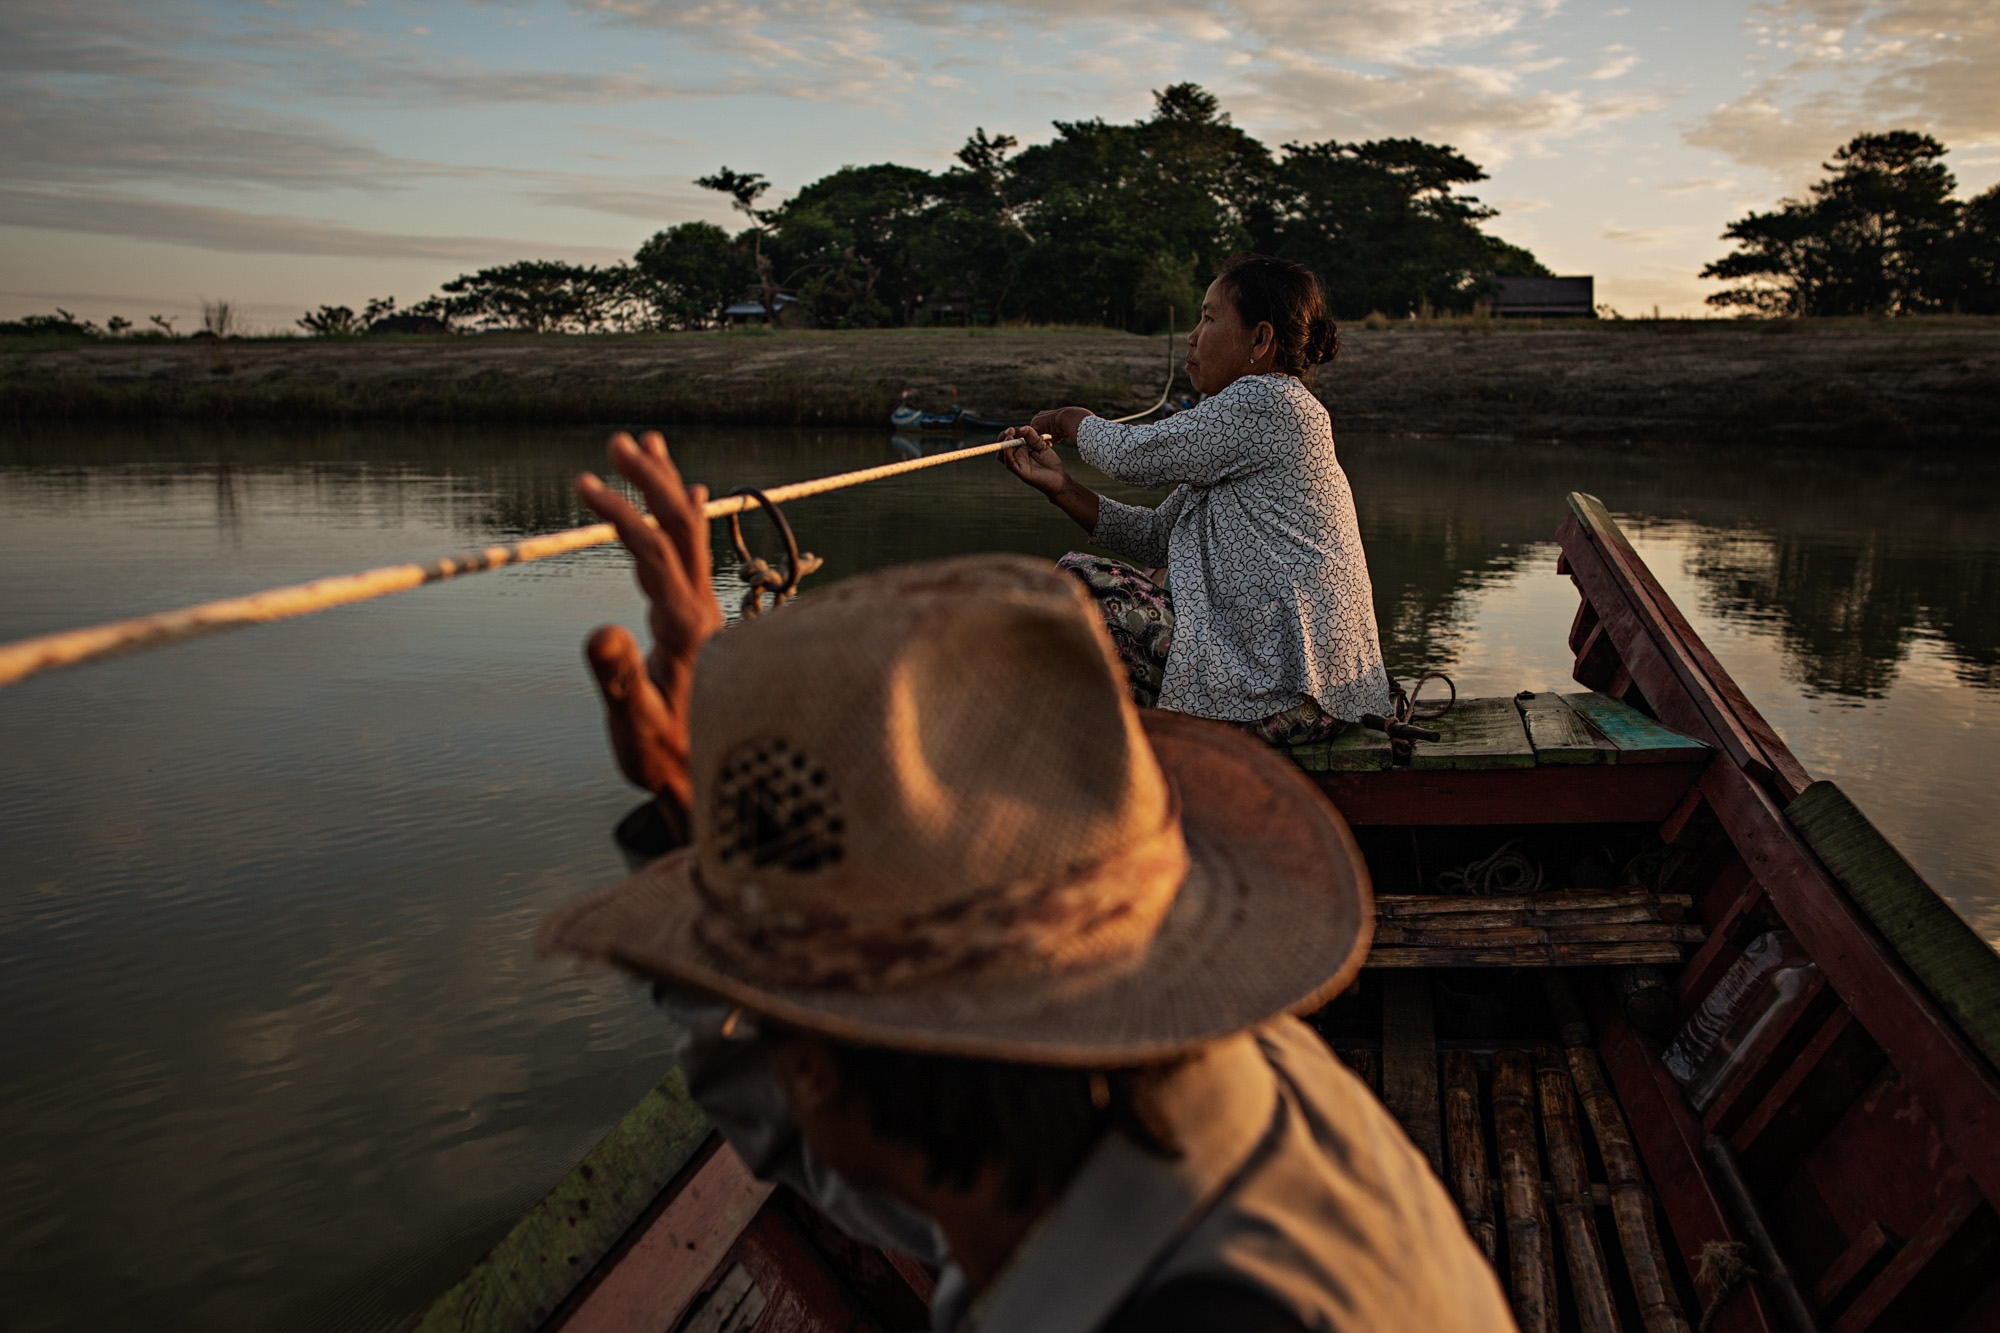 A public ferry, powered by hand and rope, makes its way across a small river in the town of Hinthada.